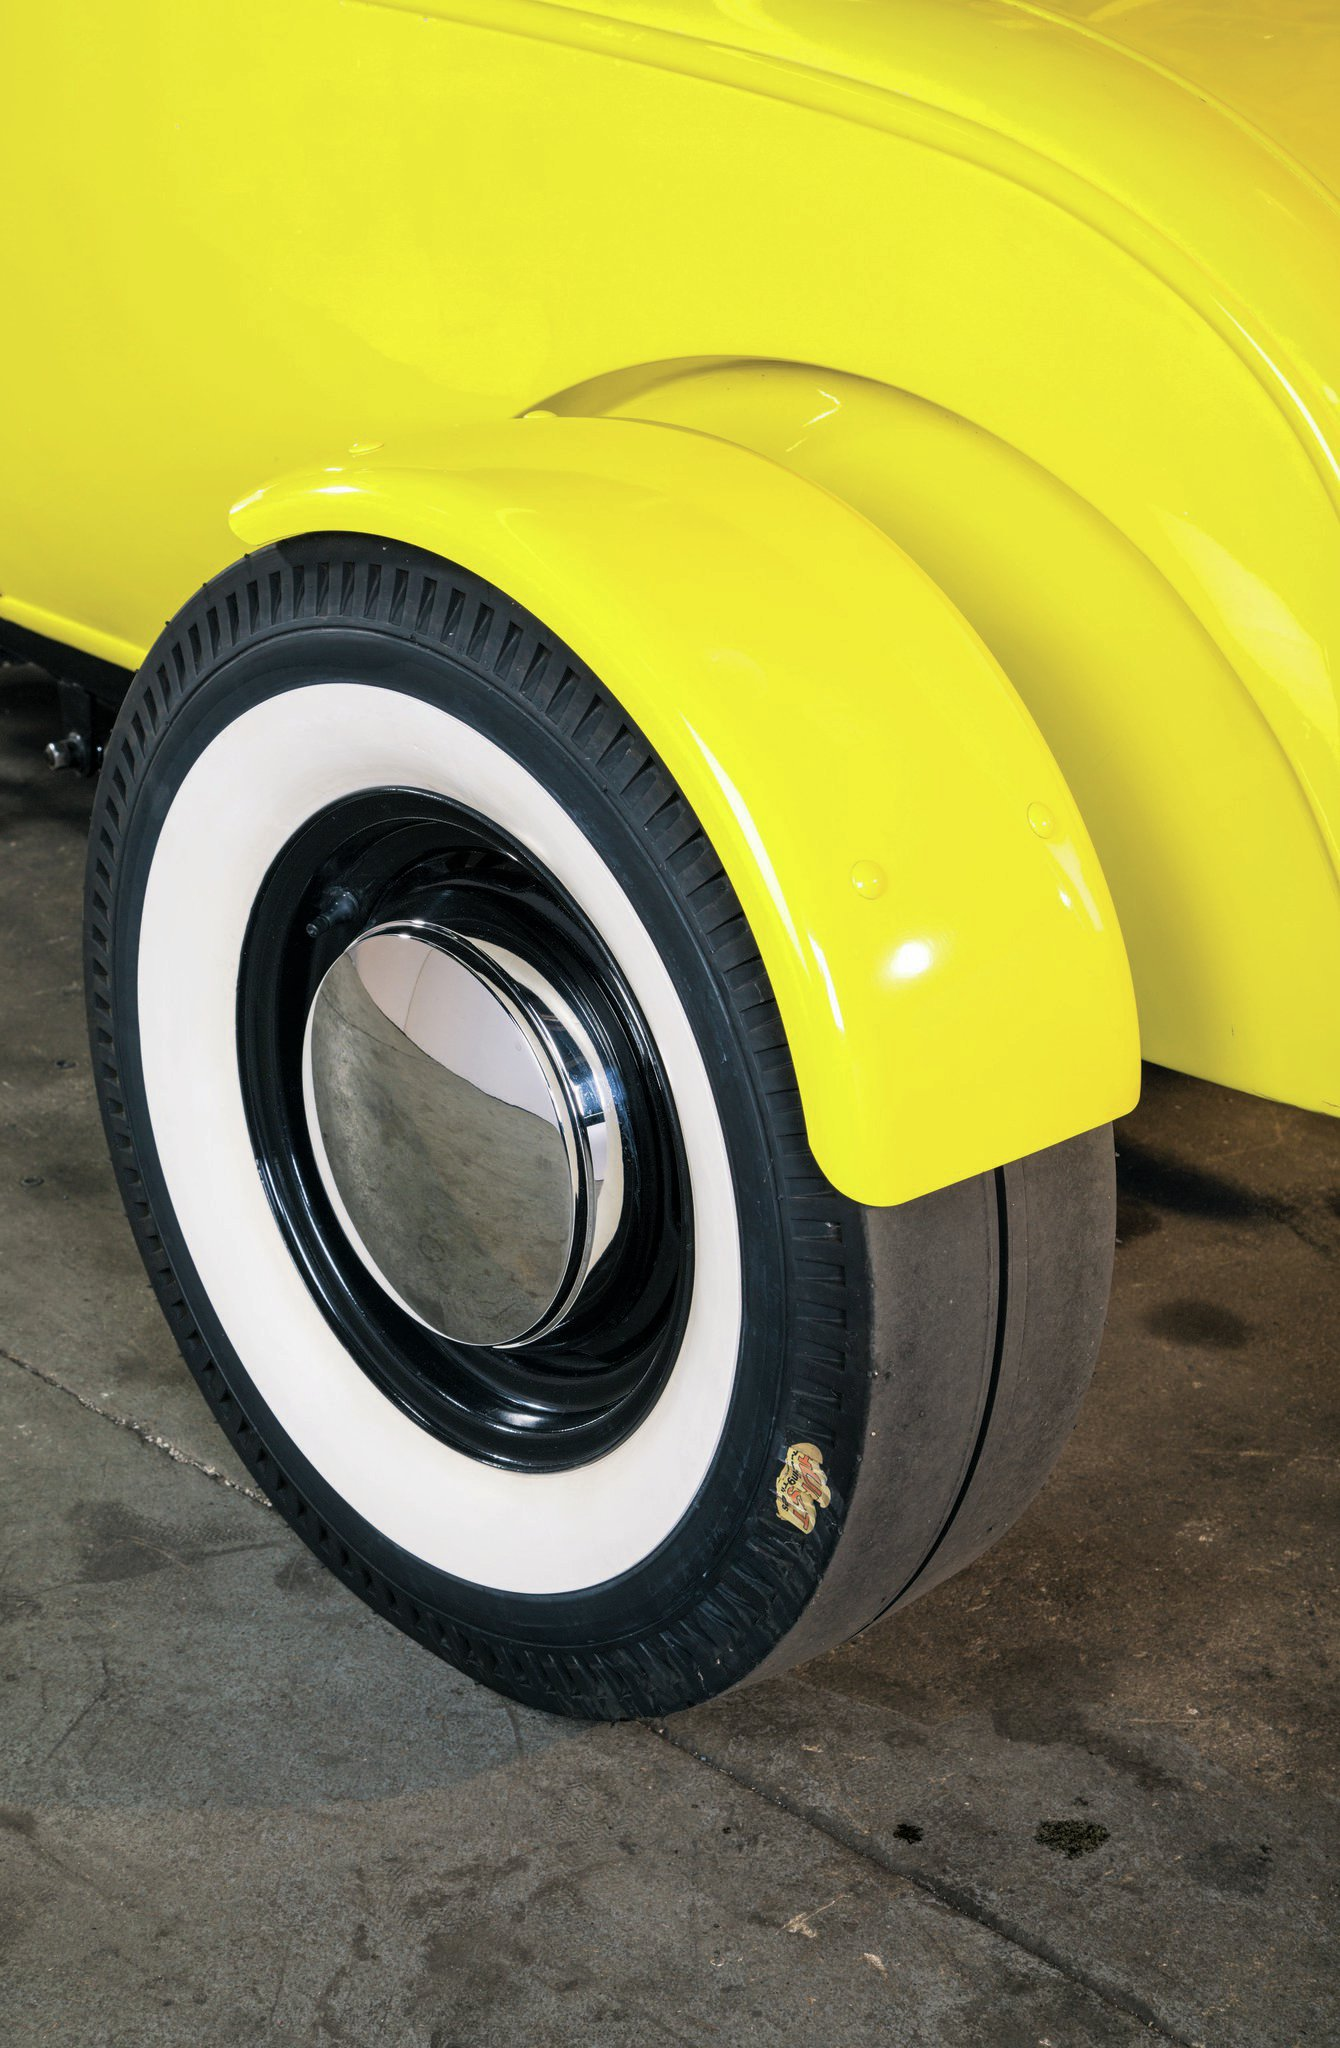 Hurst whitewall slicks look great on the car and mirror what Ken ran in the '60s. The original fenders didn't come with the car, but Verne found that fenders made for choppers worked just fine.